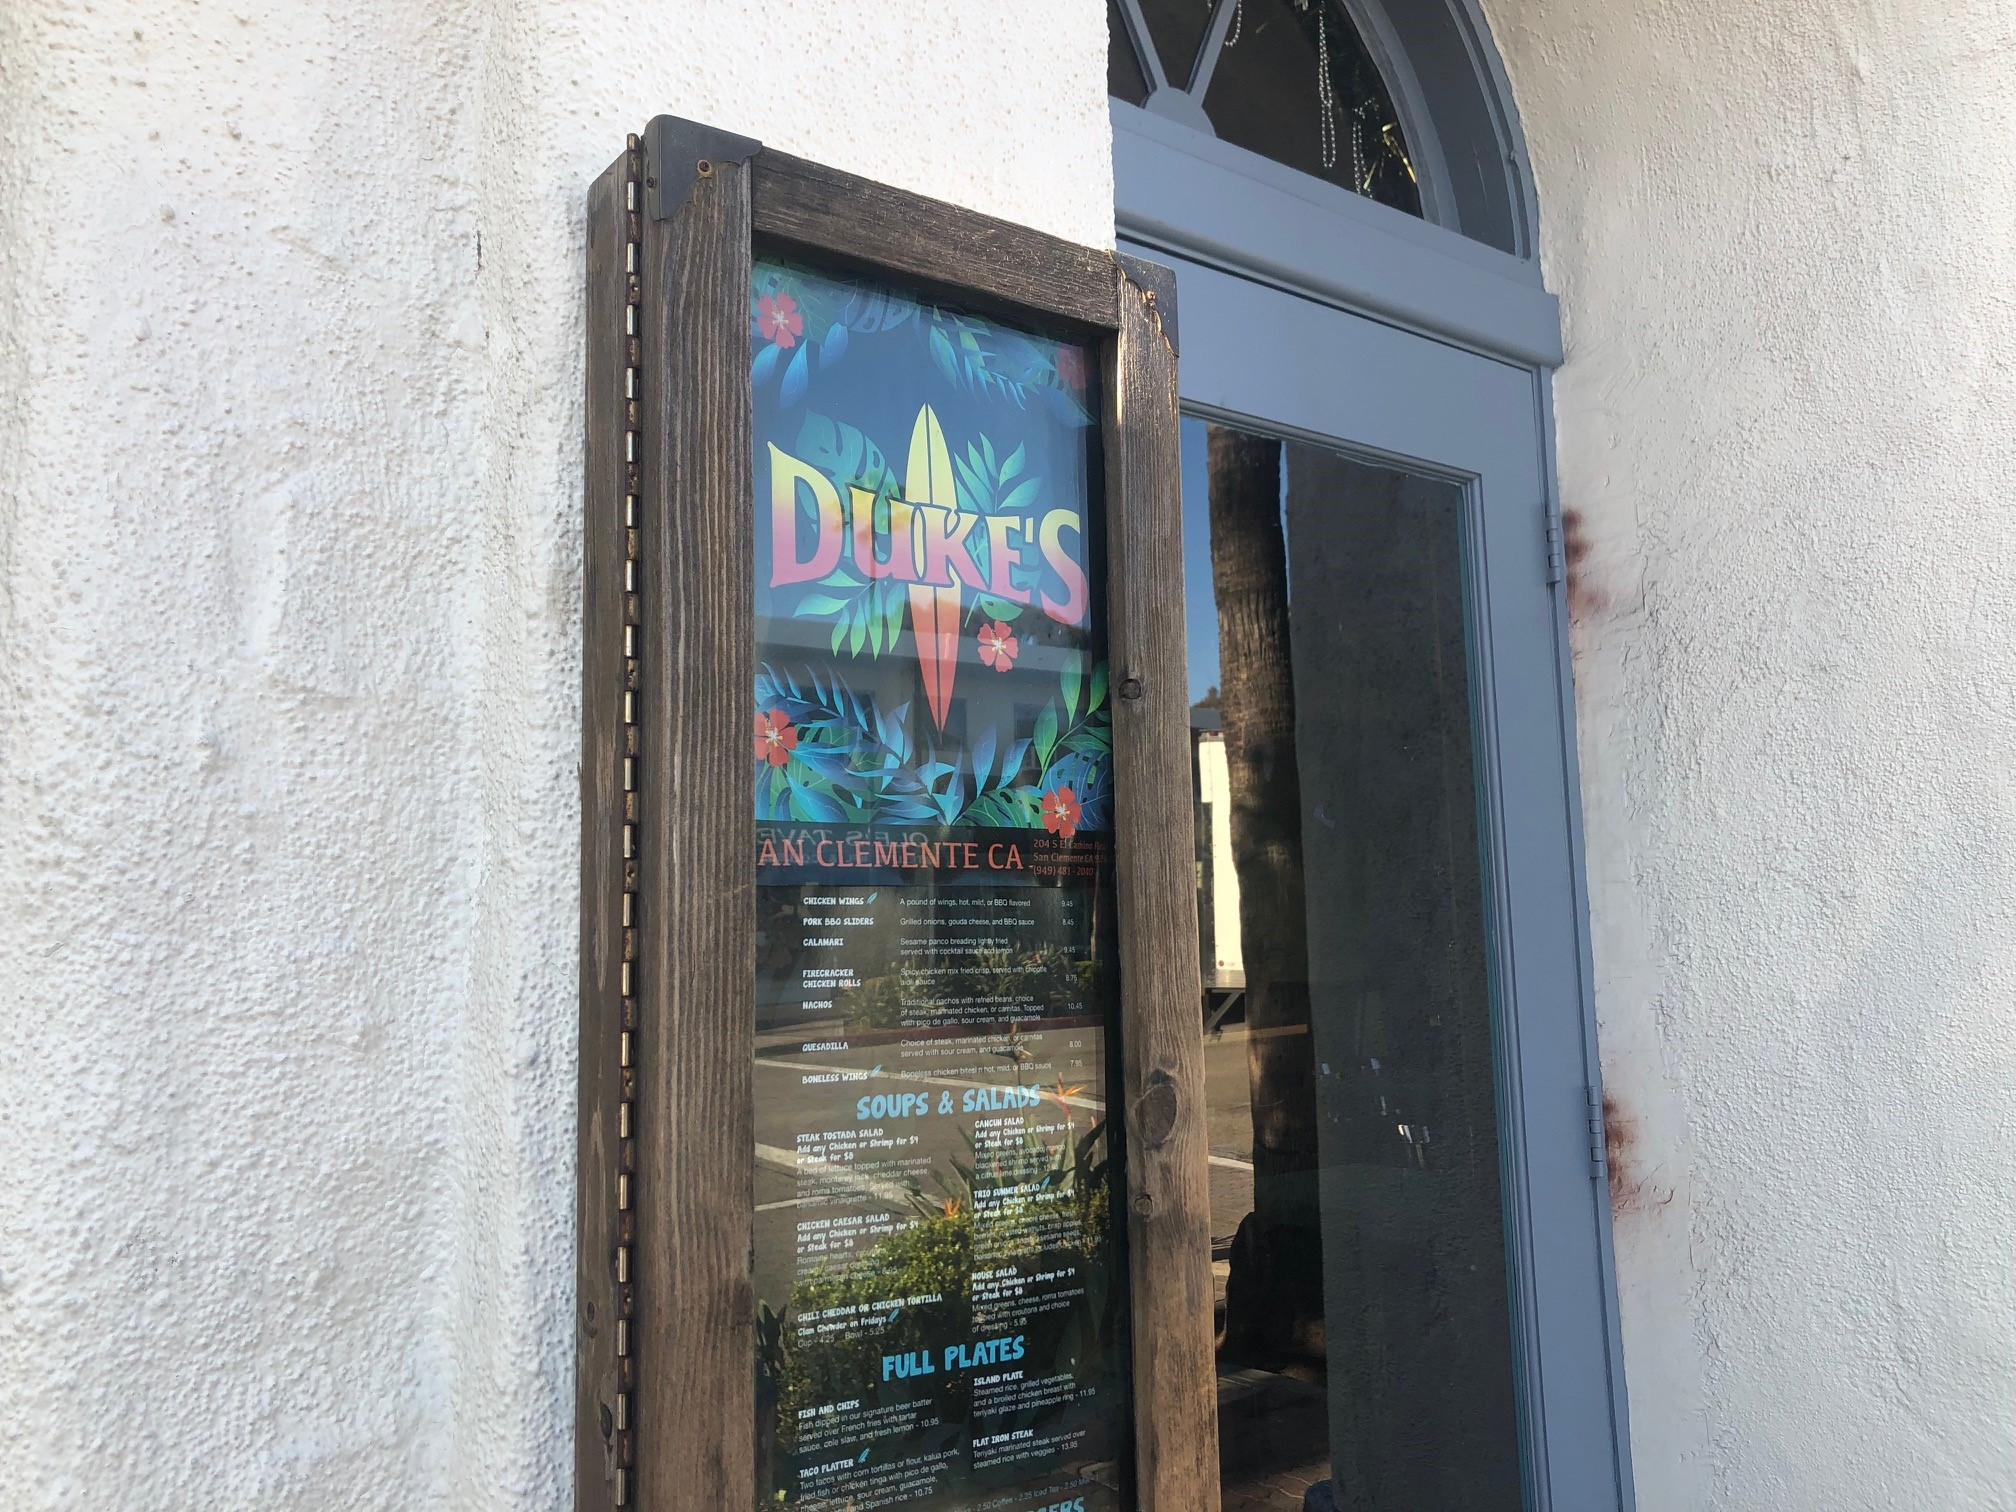 Duke's San Clemente, located at 204 S. El Camino Real, recently closed its doors, the bar and restaurant's general manager said. Photo: Eric Heinz